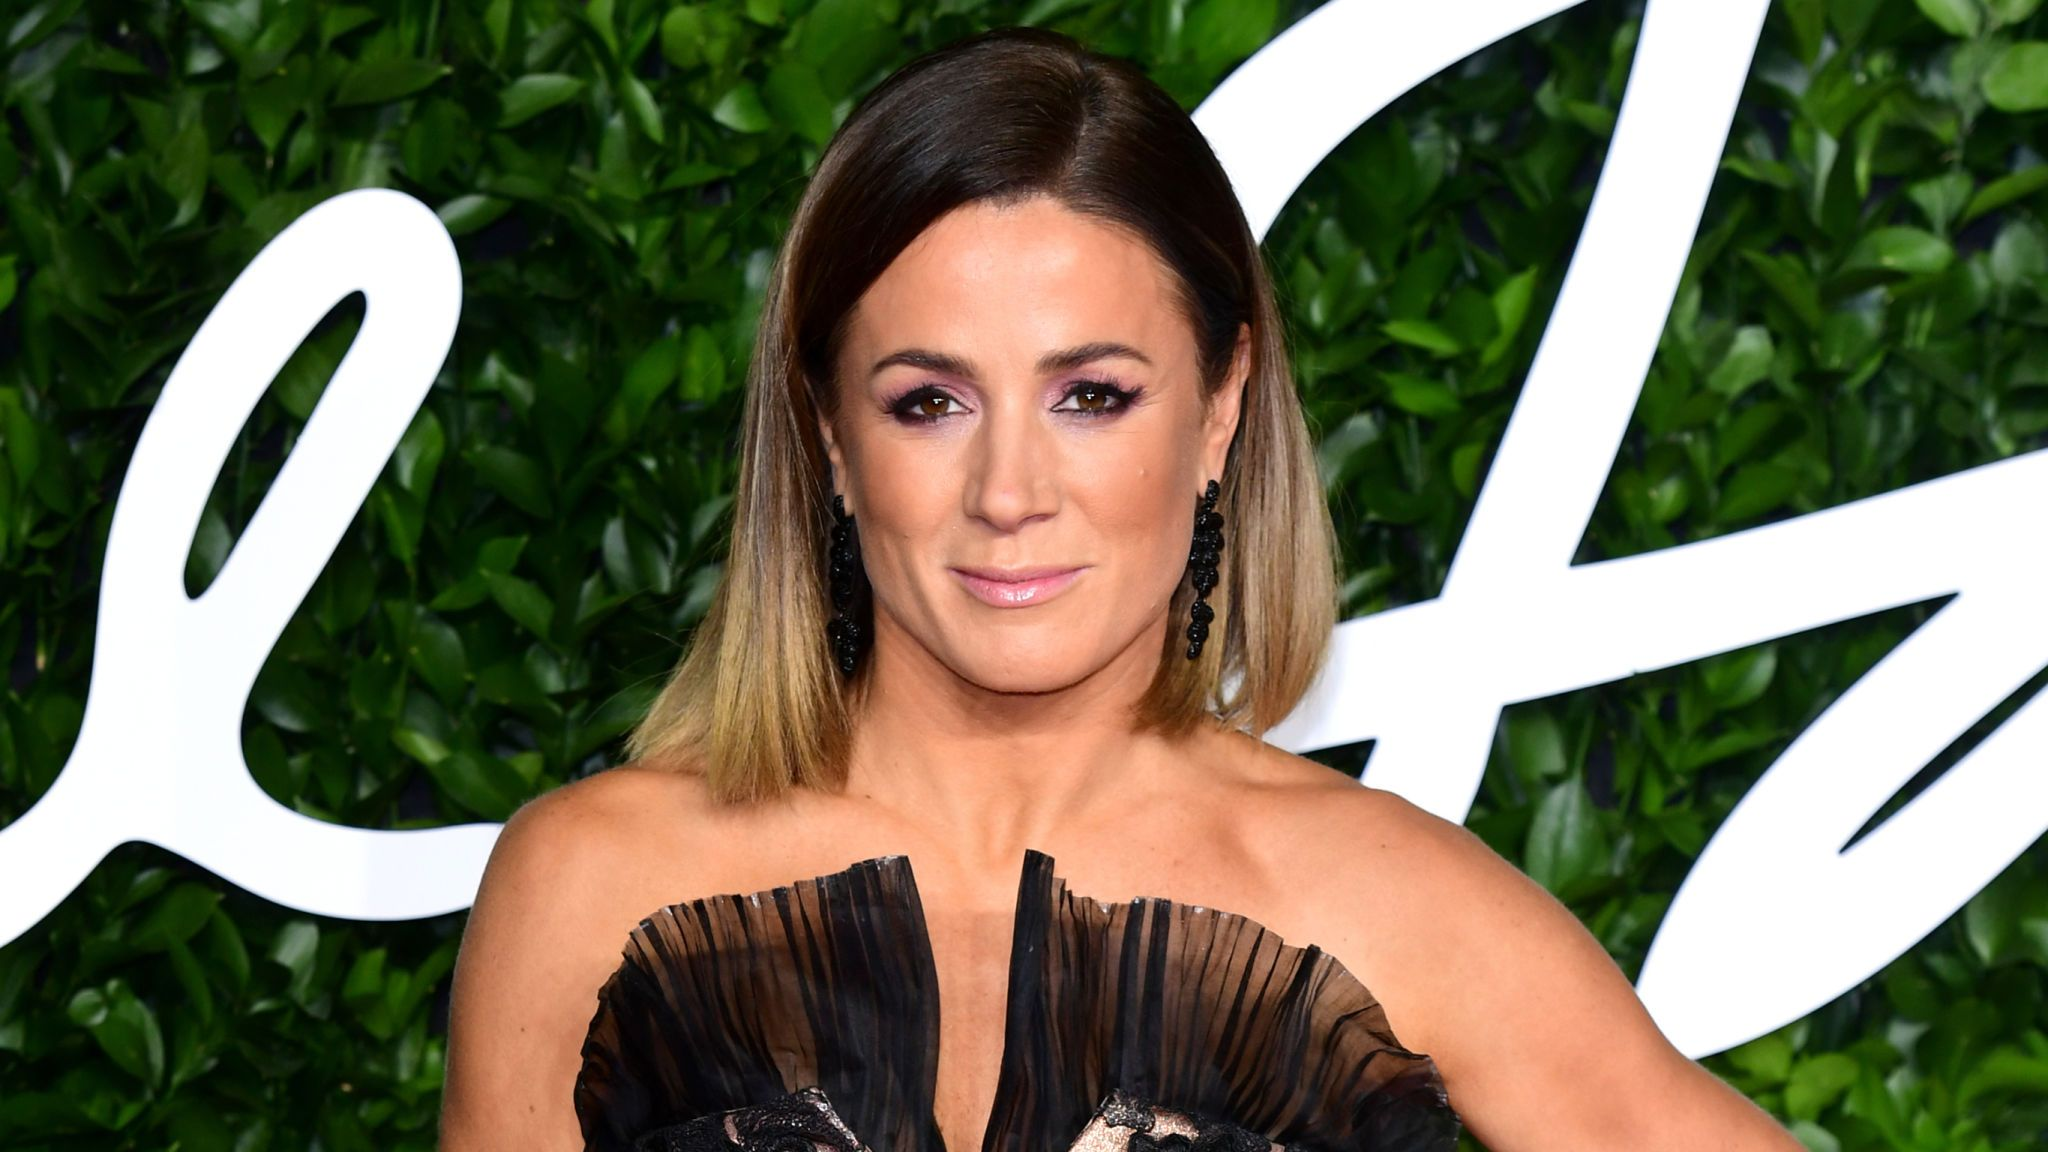 James spoke to Sky Sports TV presenter Natalie Pinkham's In The Pink podcast